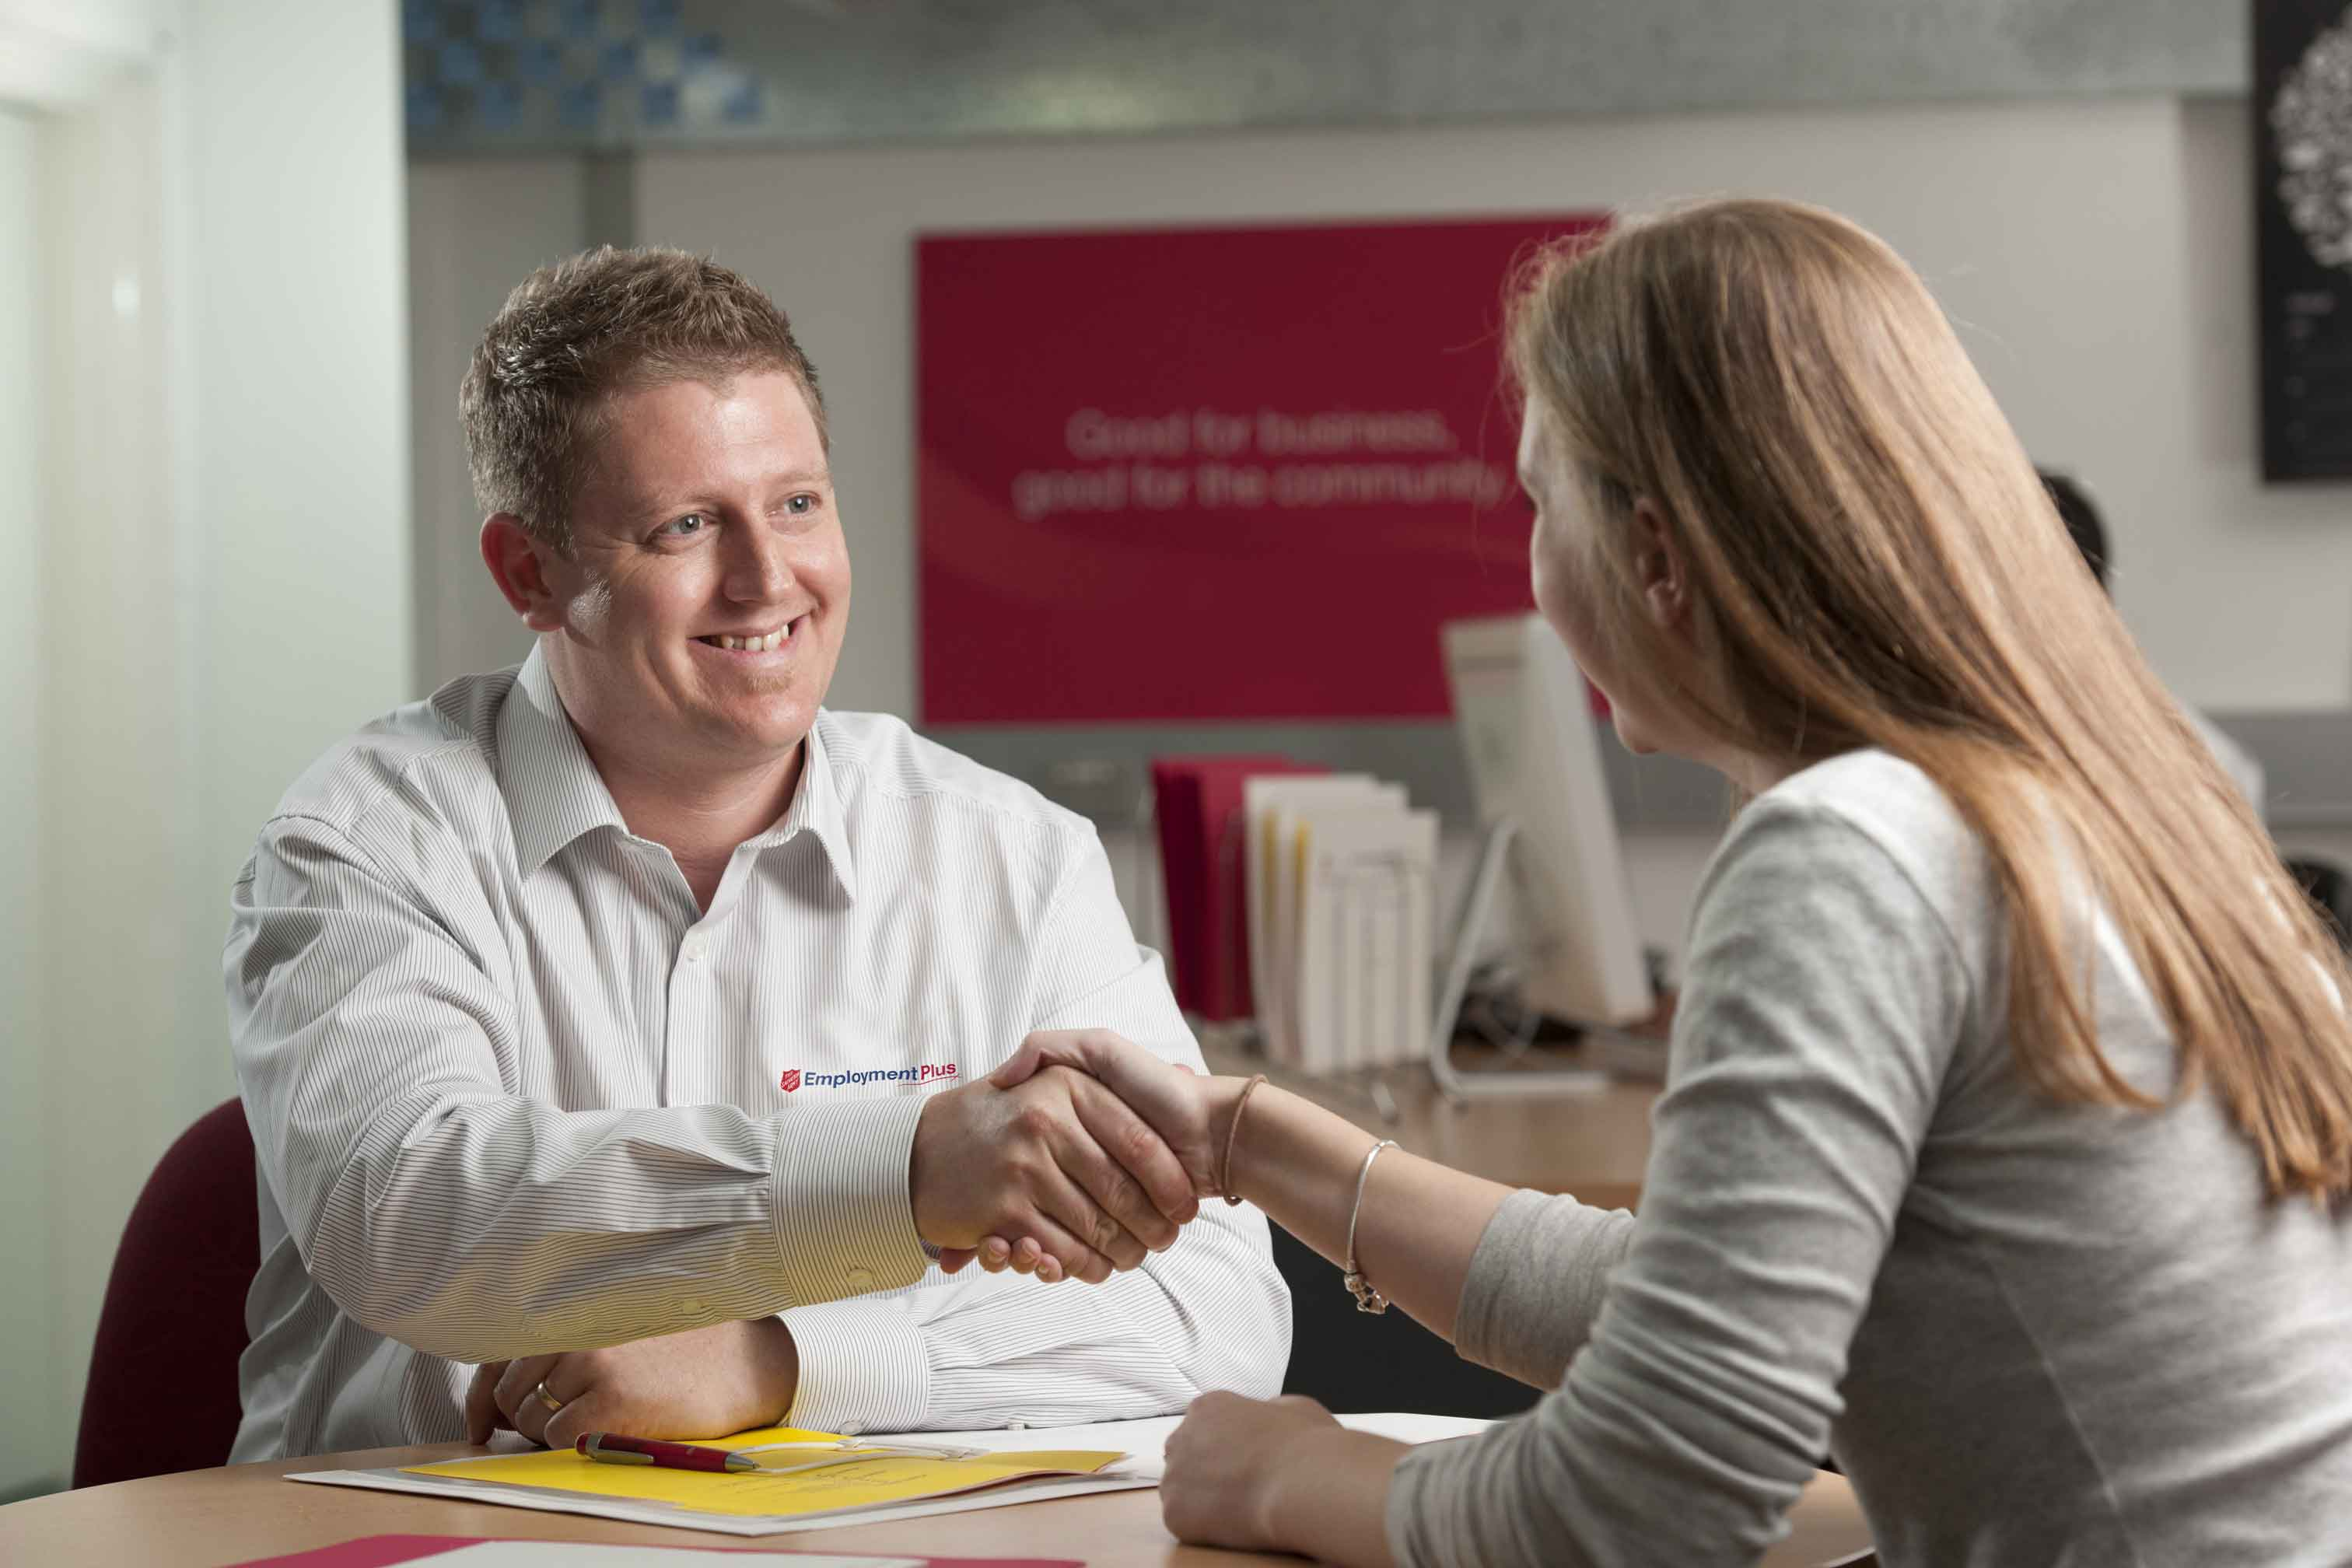 Man from Employment Plus shaking hands with female job seeker